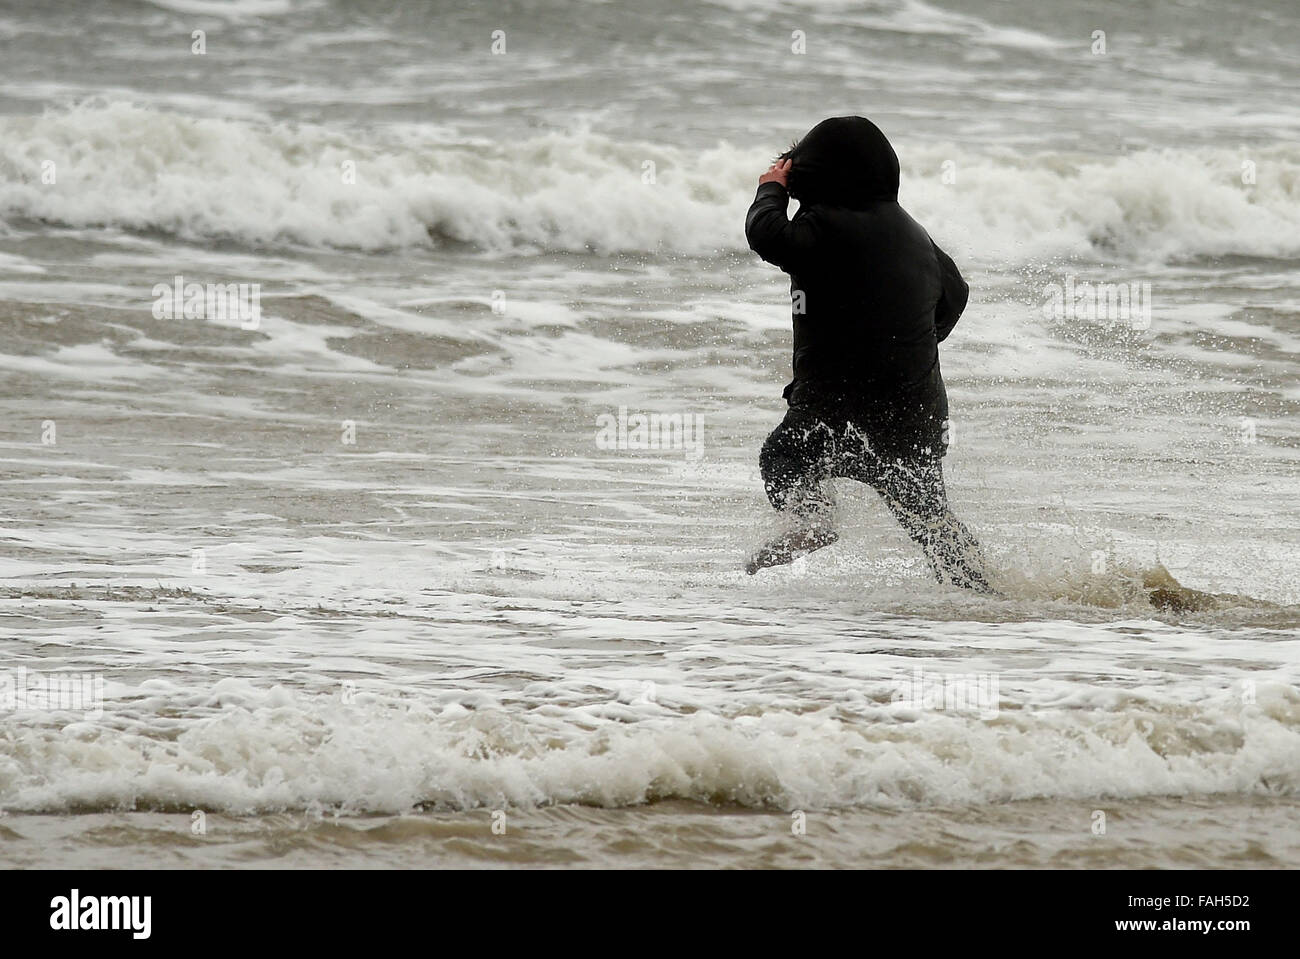 Boy in the sea fully clothed during stormy weather - Stock Image